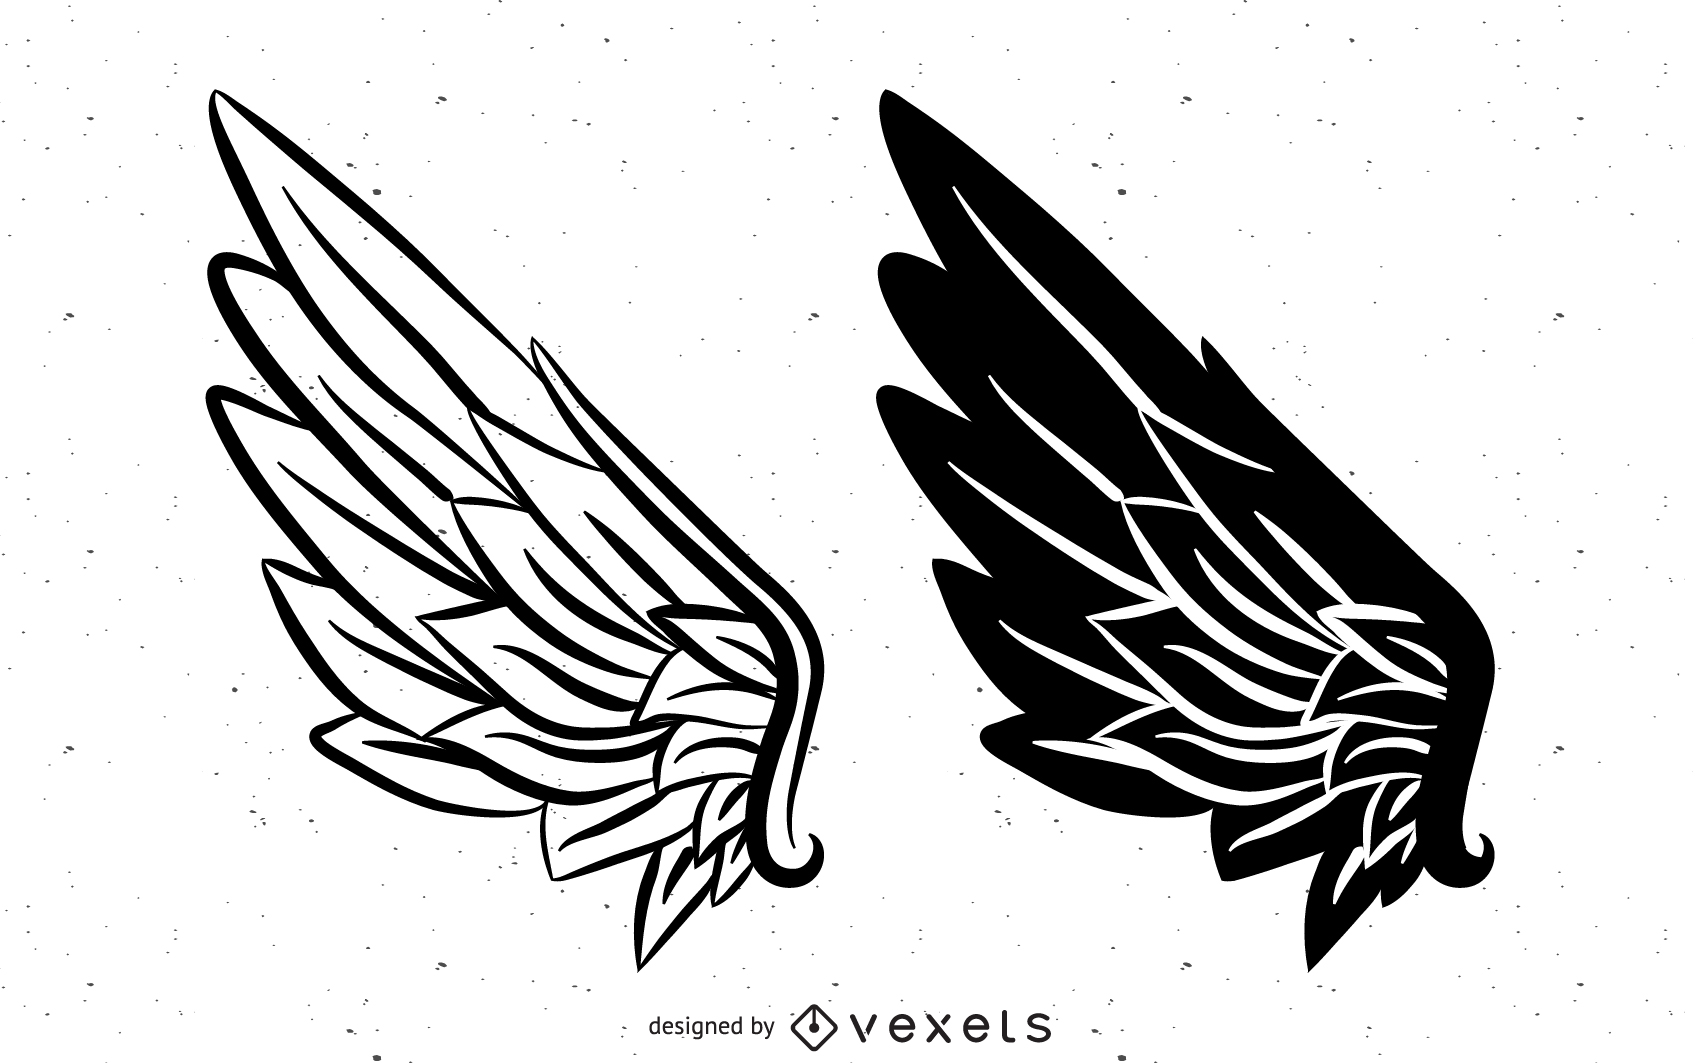 black and white vector wings black and white vector wings harley number 1 logo harley 1 logo vector